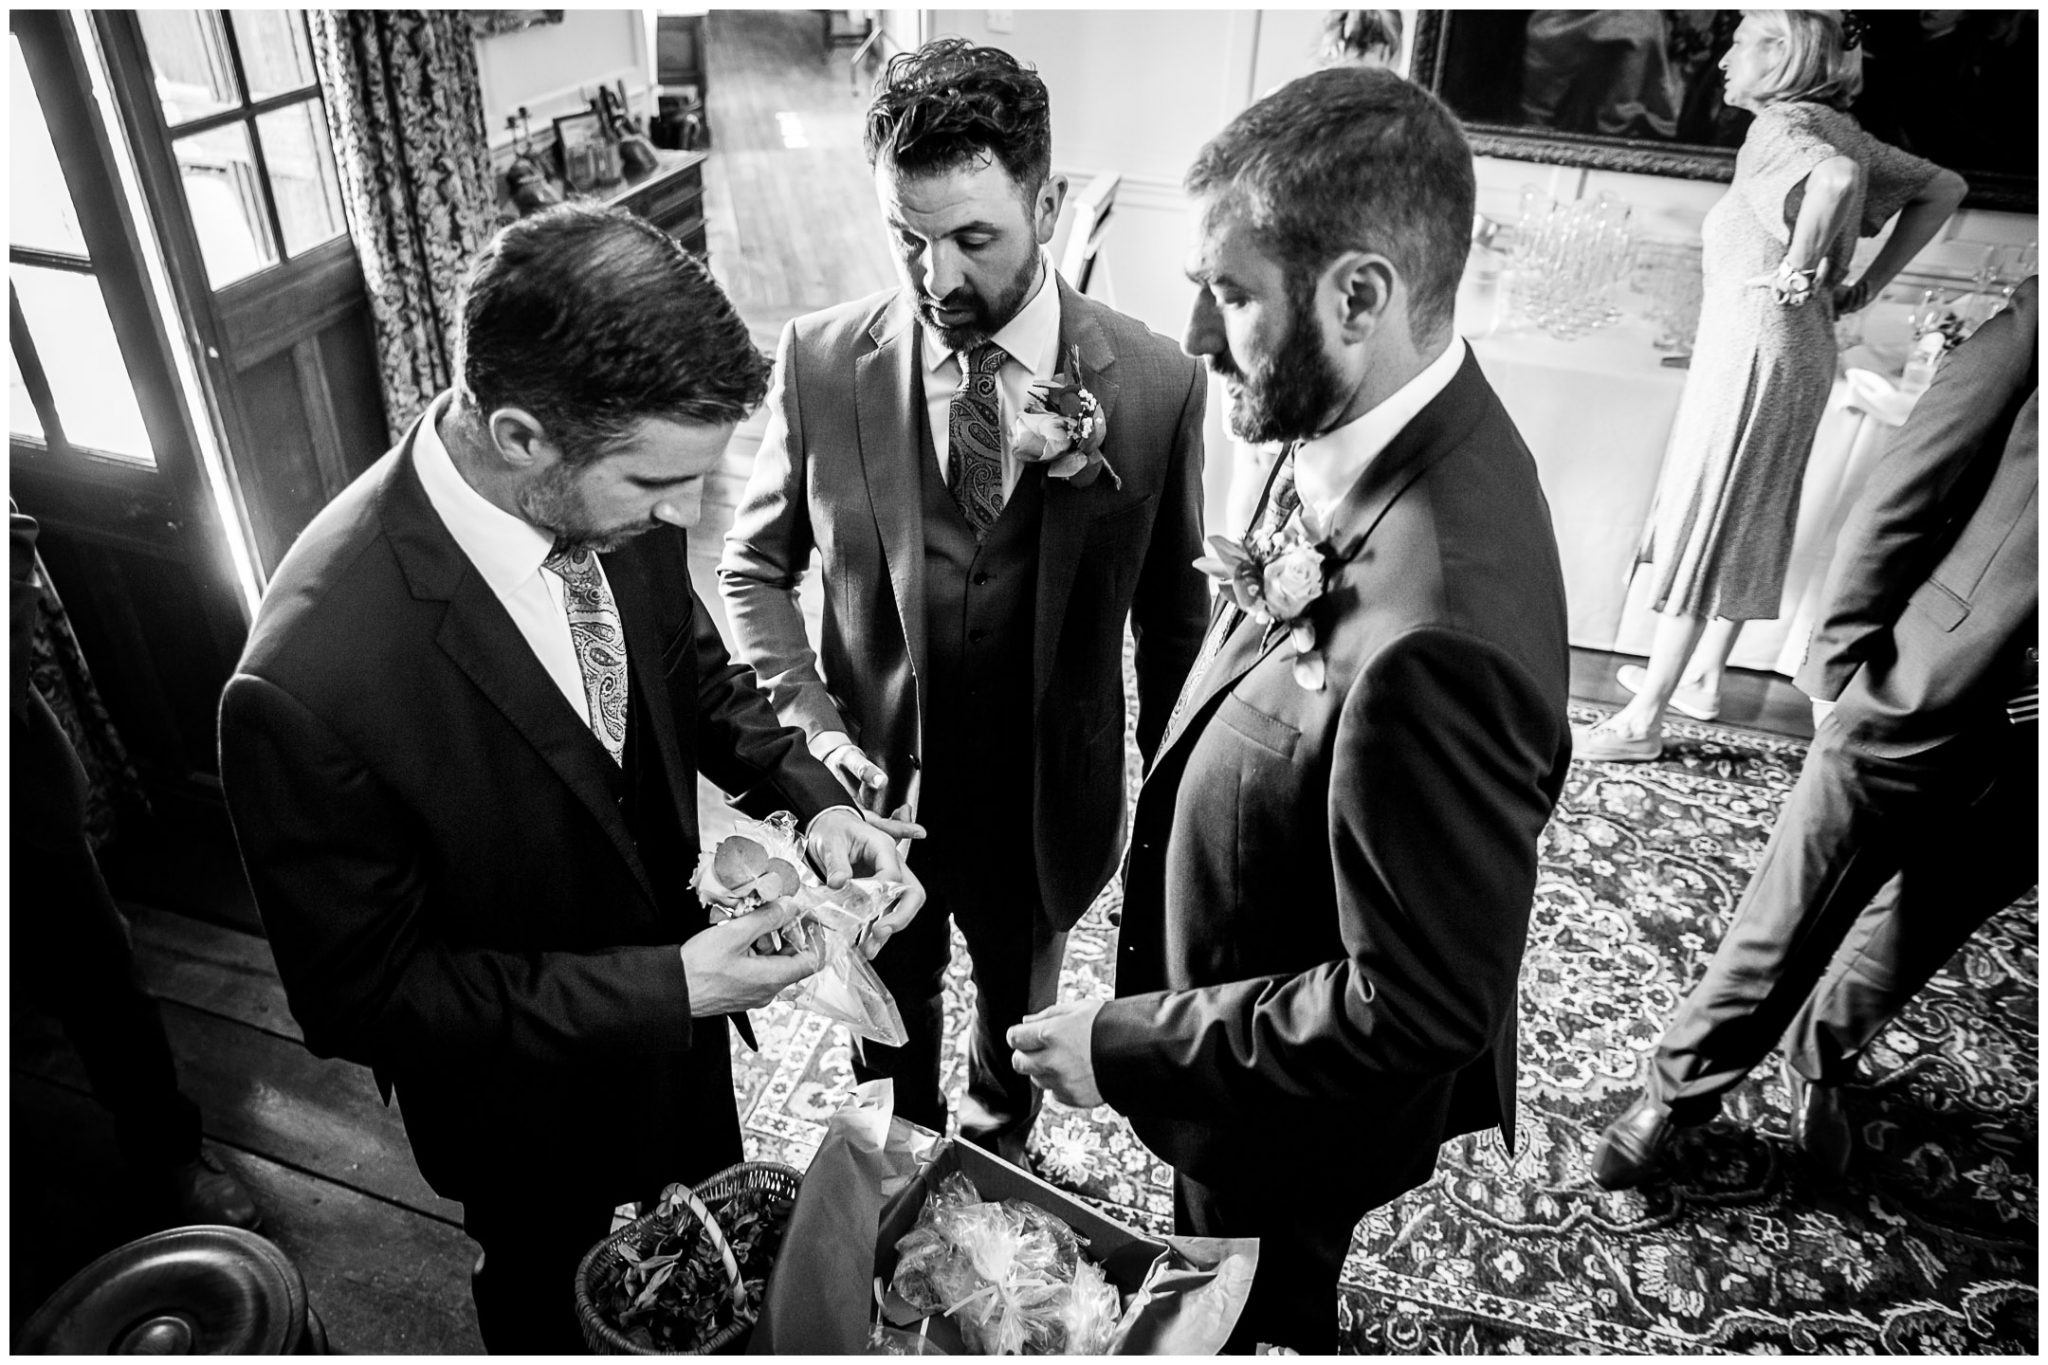 The groom and best men work out what to do with buttonholes